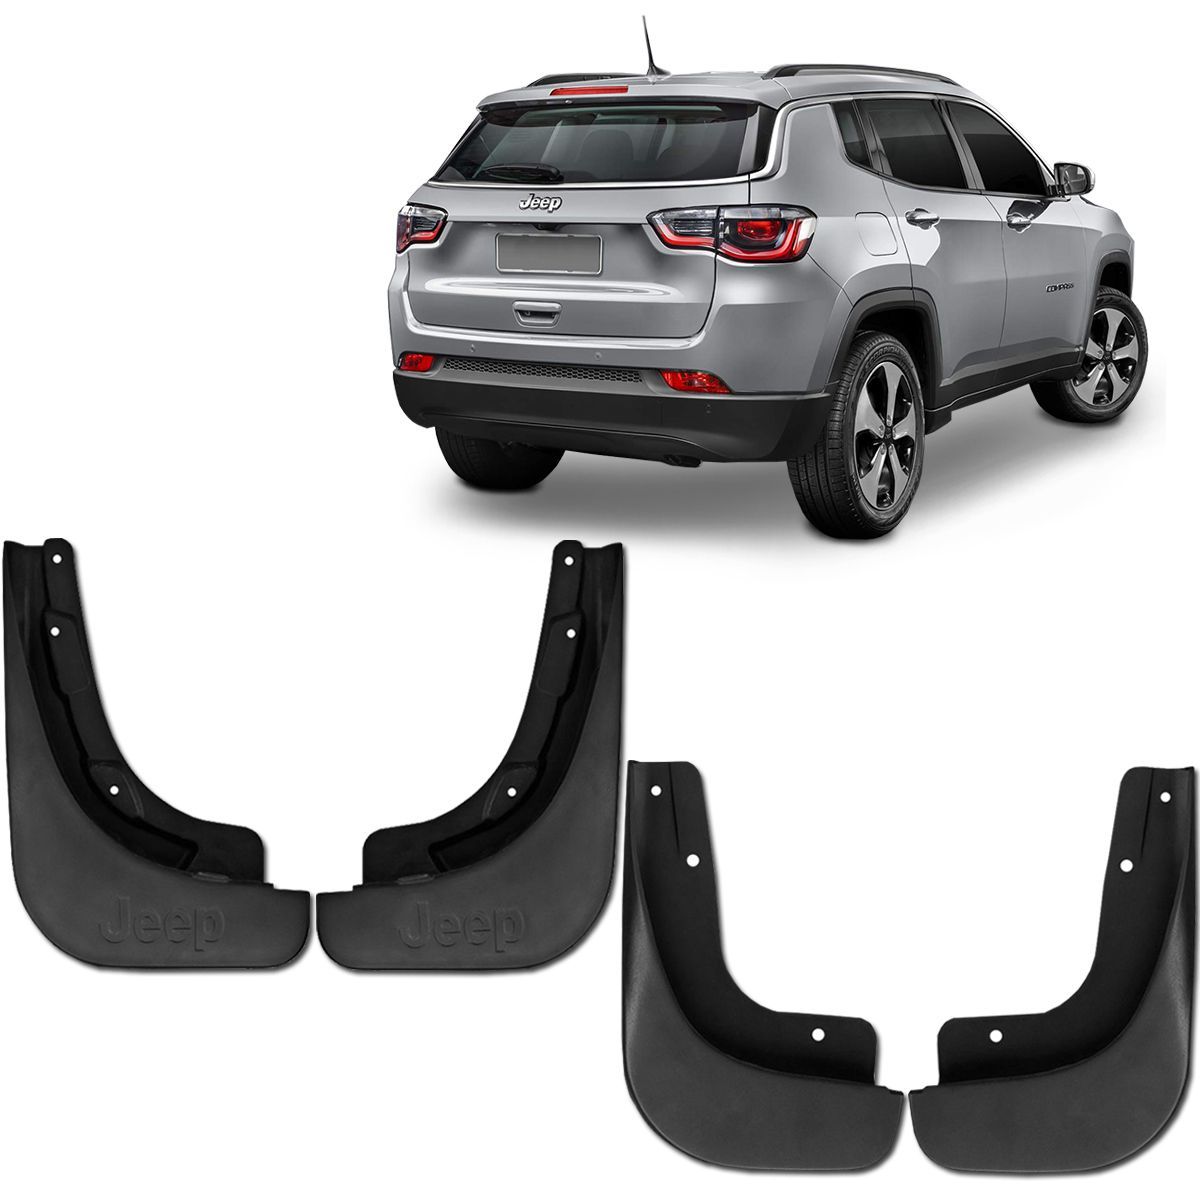 Kit Apara Barro Lameira Jeep Compass 2017 a 2019 Dfender